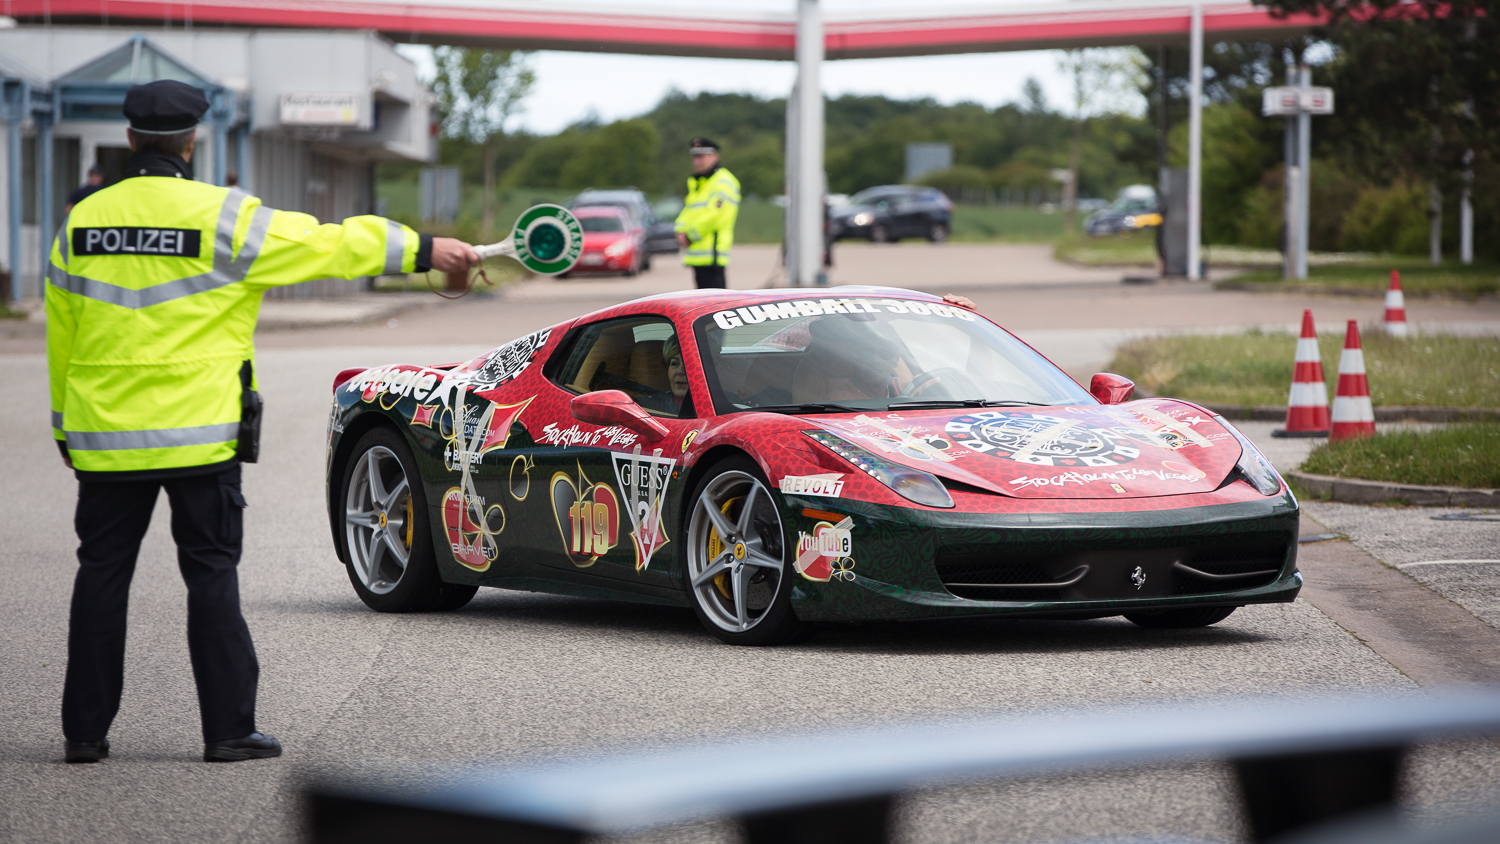 SMoores_15-05-26_Gumball 3000 Day 3_0196-Edit.jpg